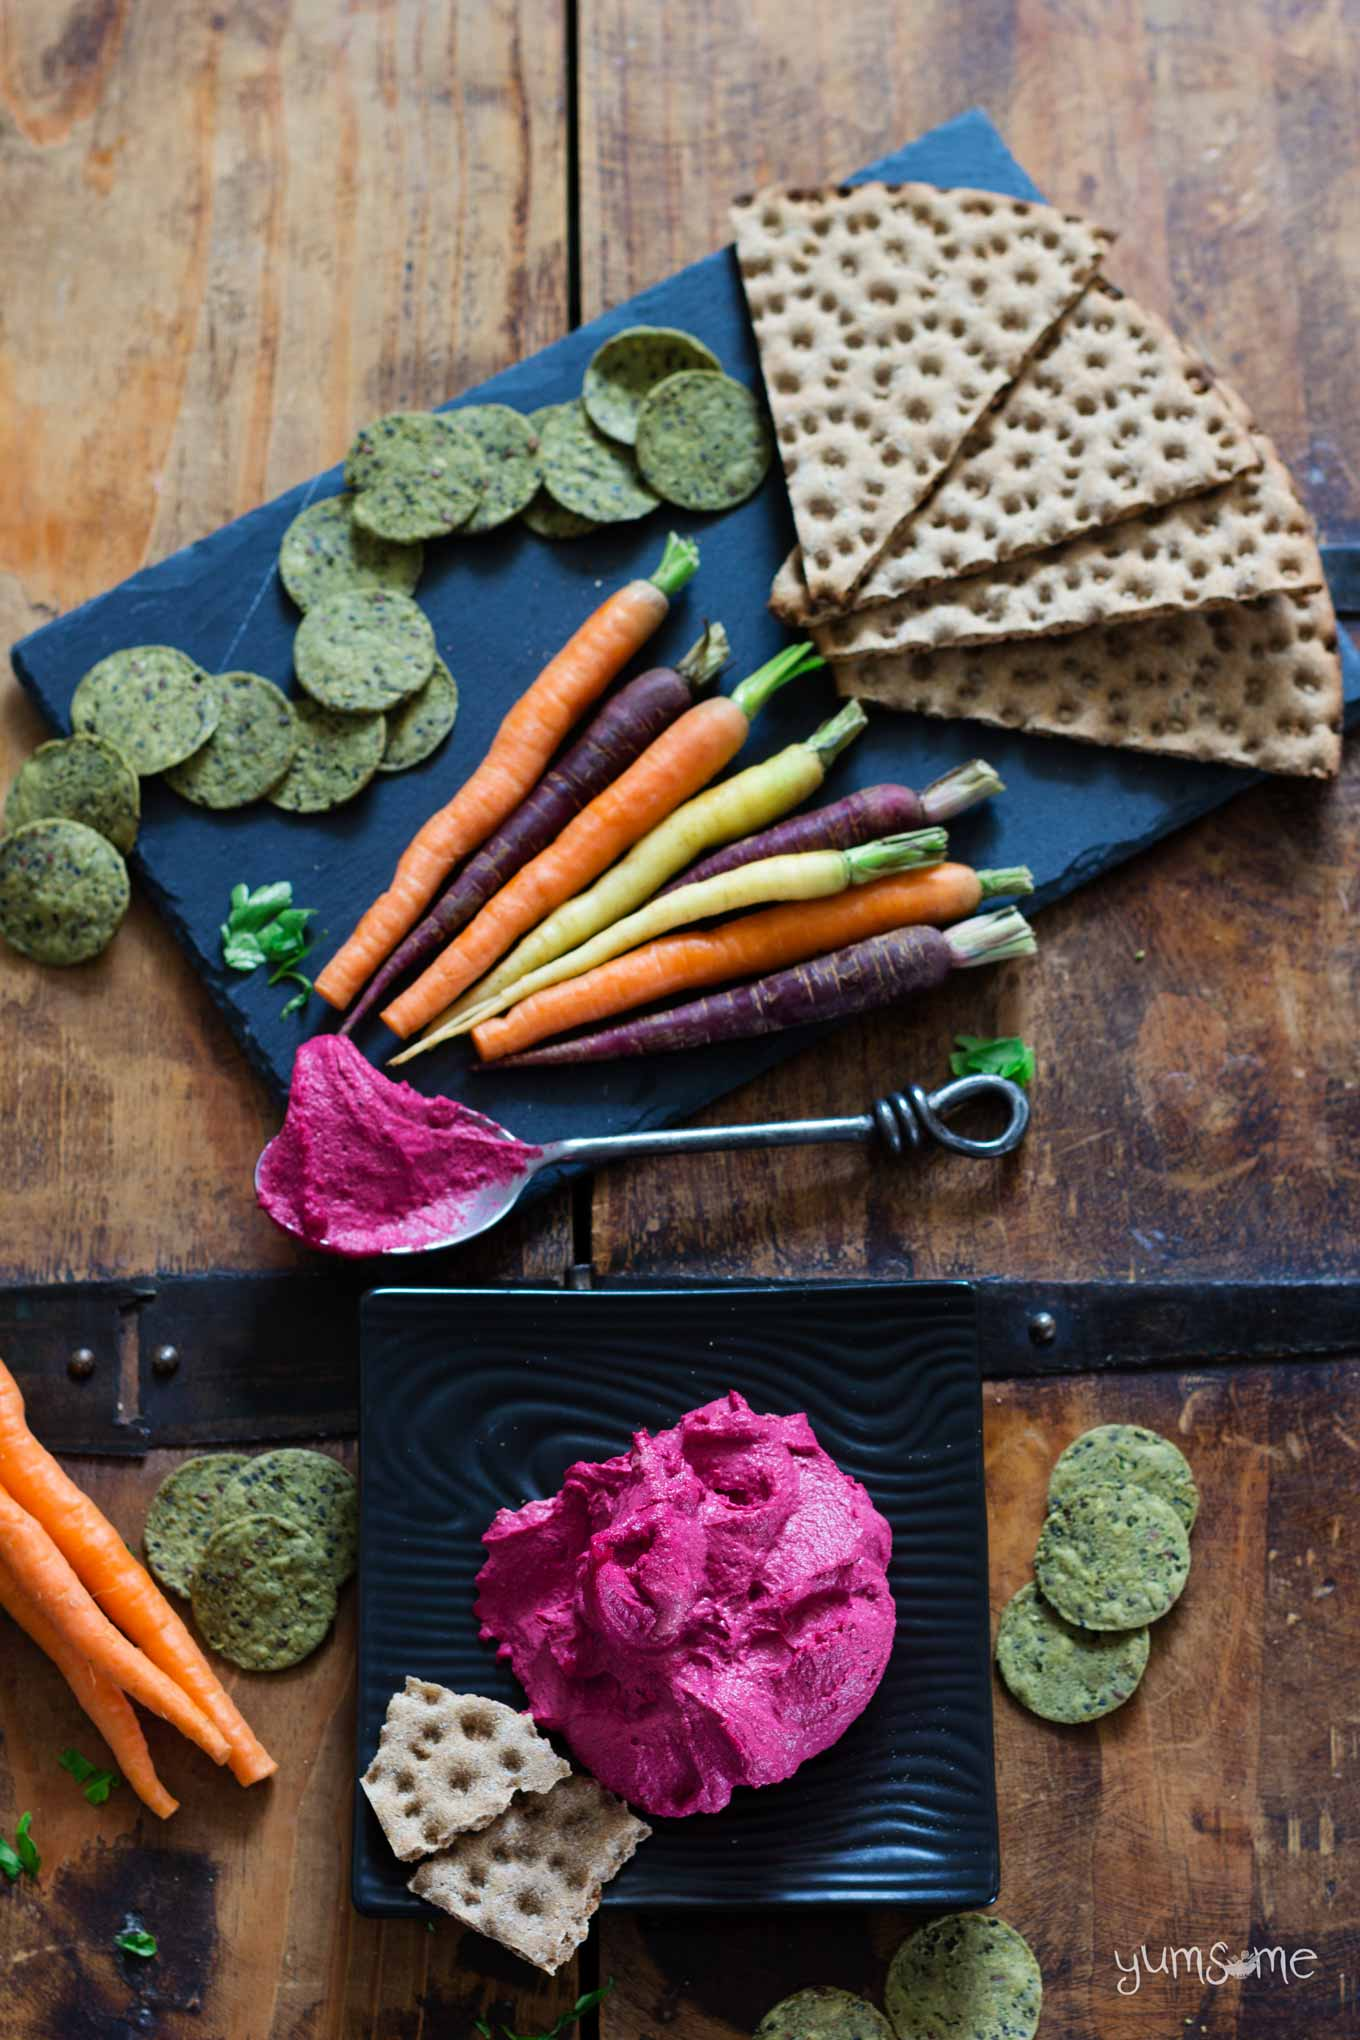 Bright pink beetroot hummus on a black plate, plus multicoloured carrots and crackers.